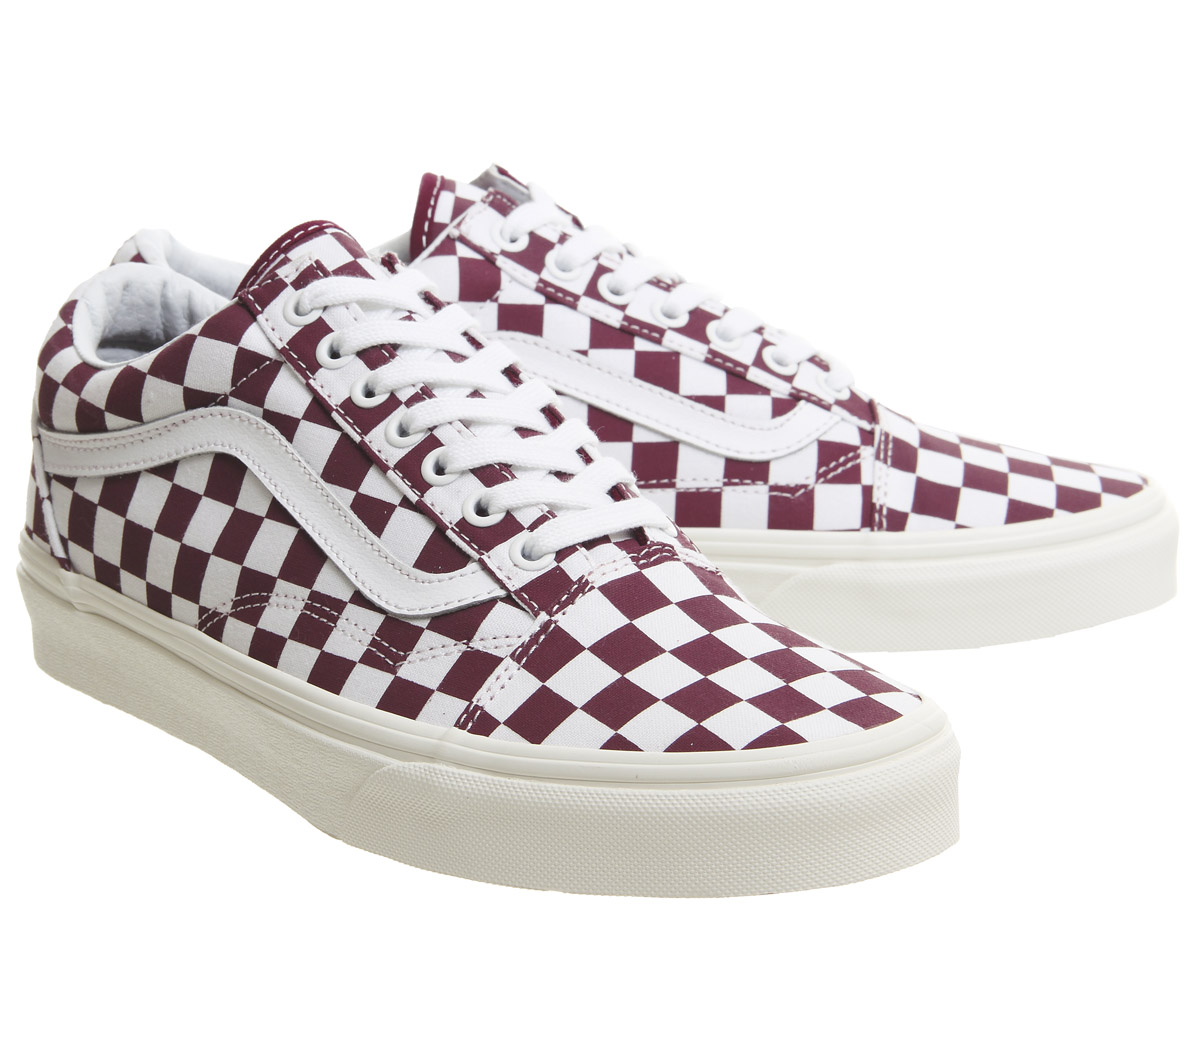 ecf101a13cd608 Mens Vans Old Skool Trainers Port Royale Marshmellow Checkerboard ...